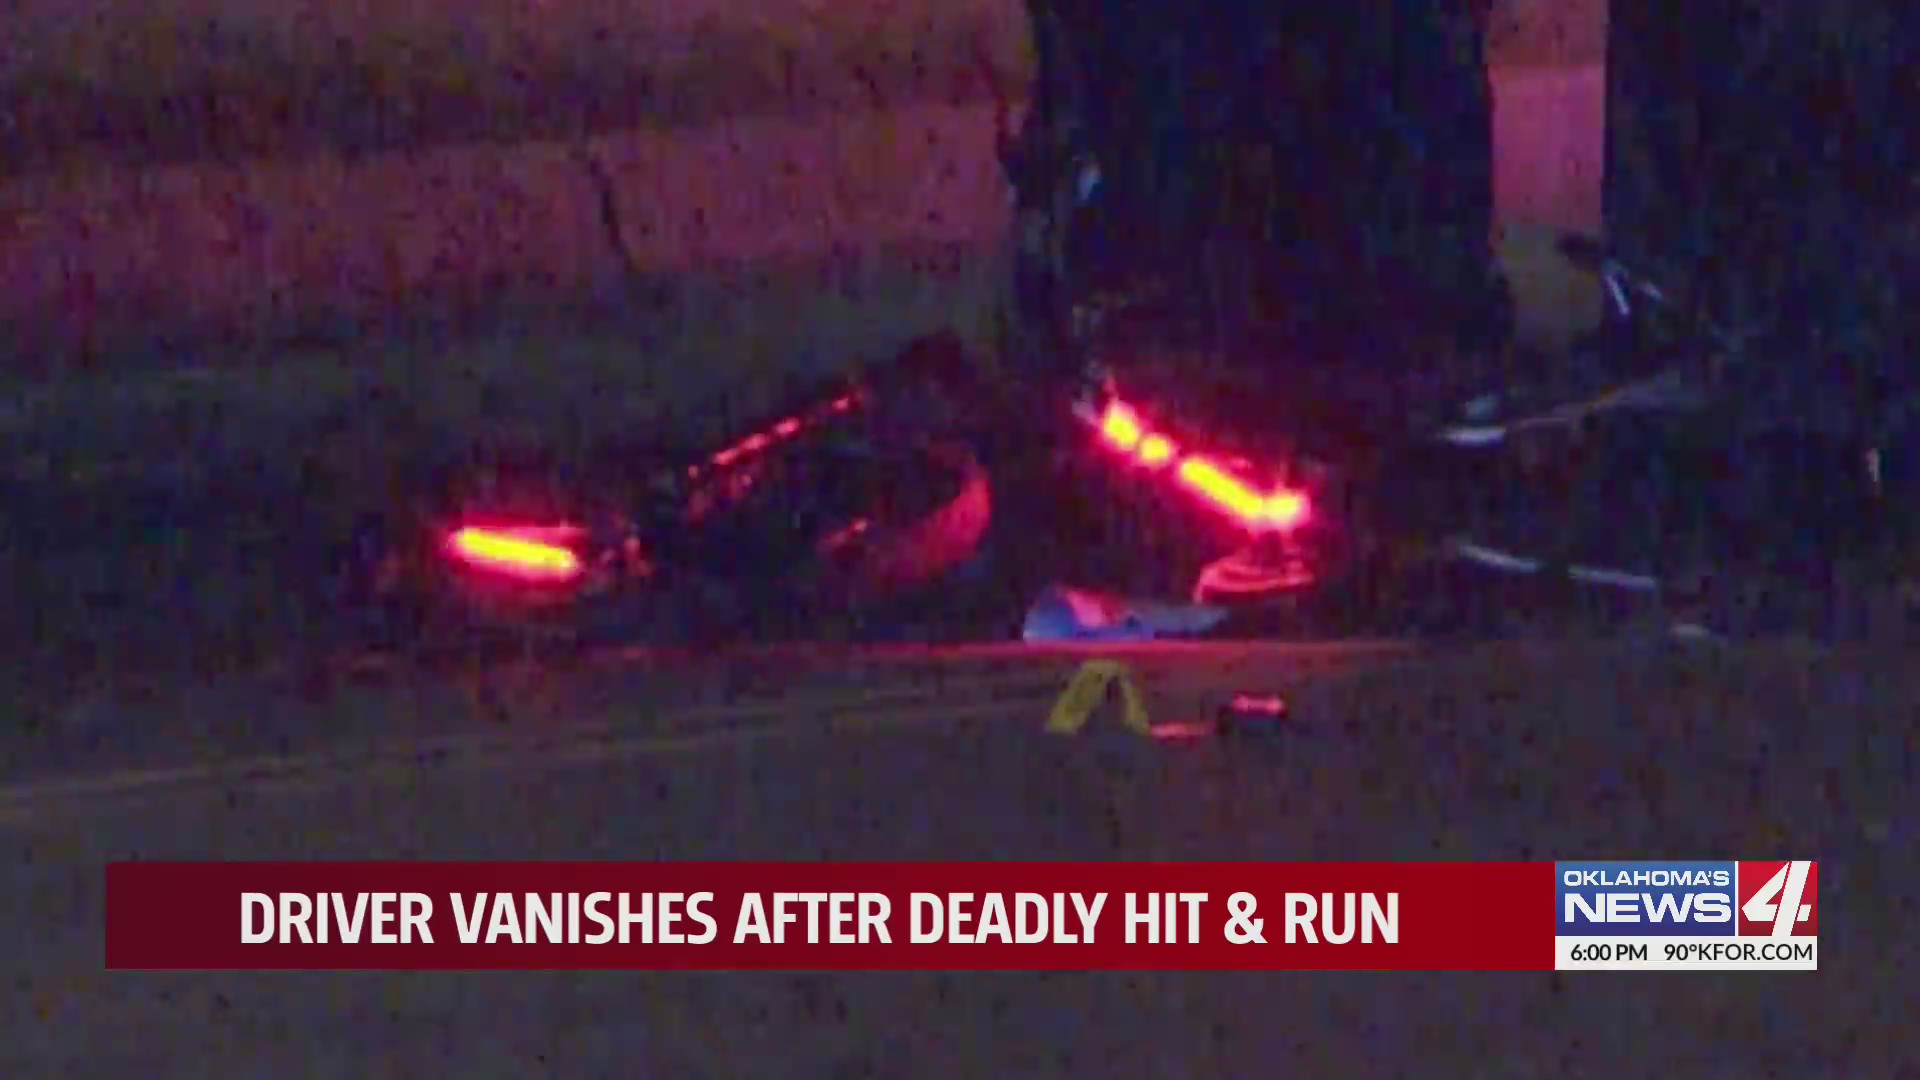 bicycle at scene of fatal hit-and-run